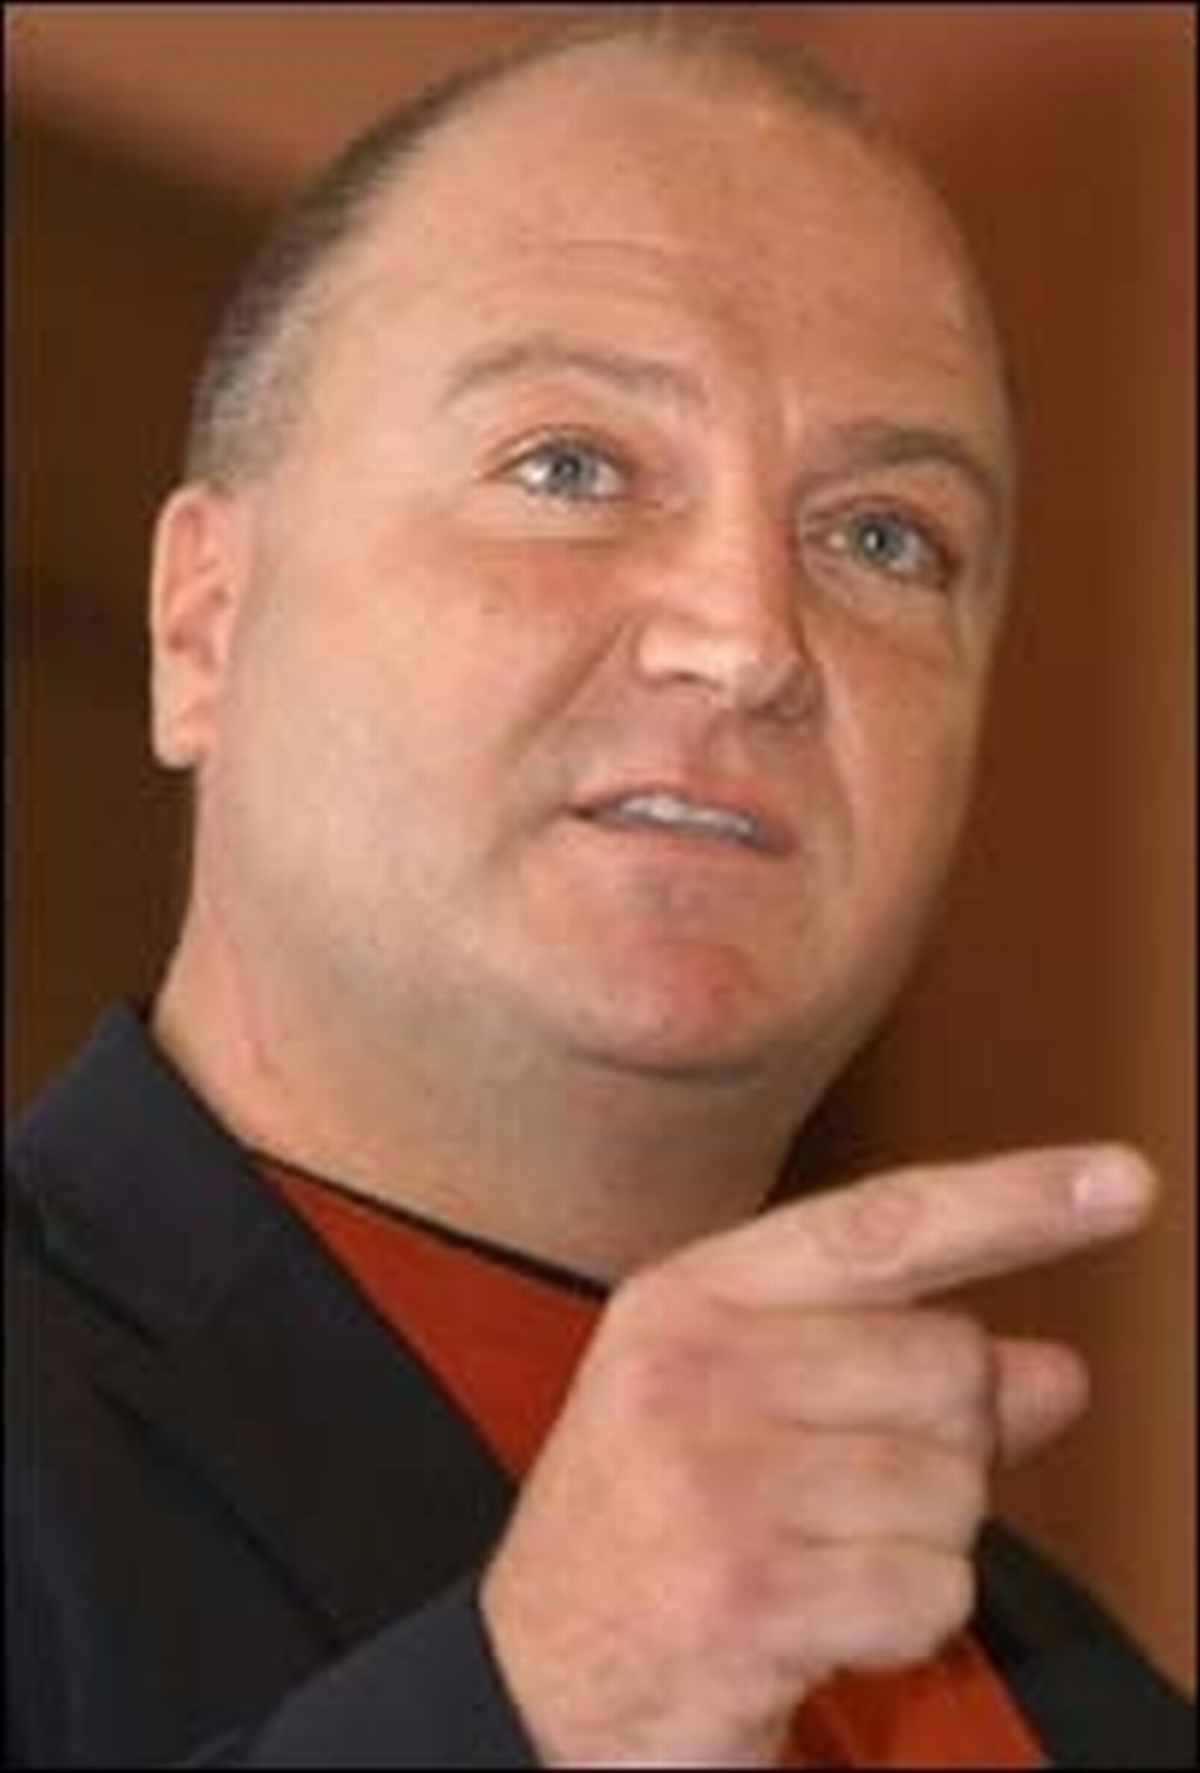 Woodford Green resident and Rail Maritime and Transport union general secretary Bob Crow has died at the age of 52